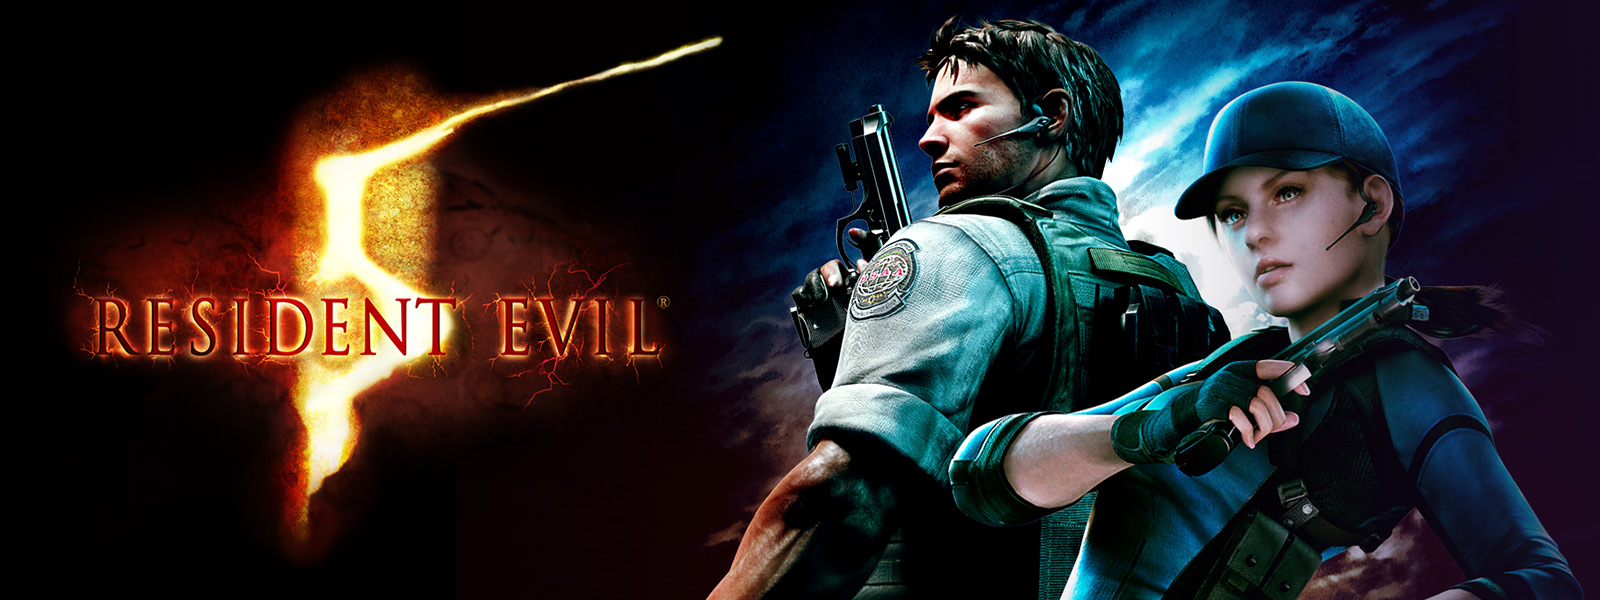 Resident Evil 5, characters holding pistols with dark cloudy sky in background